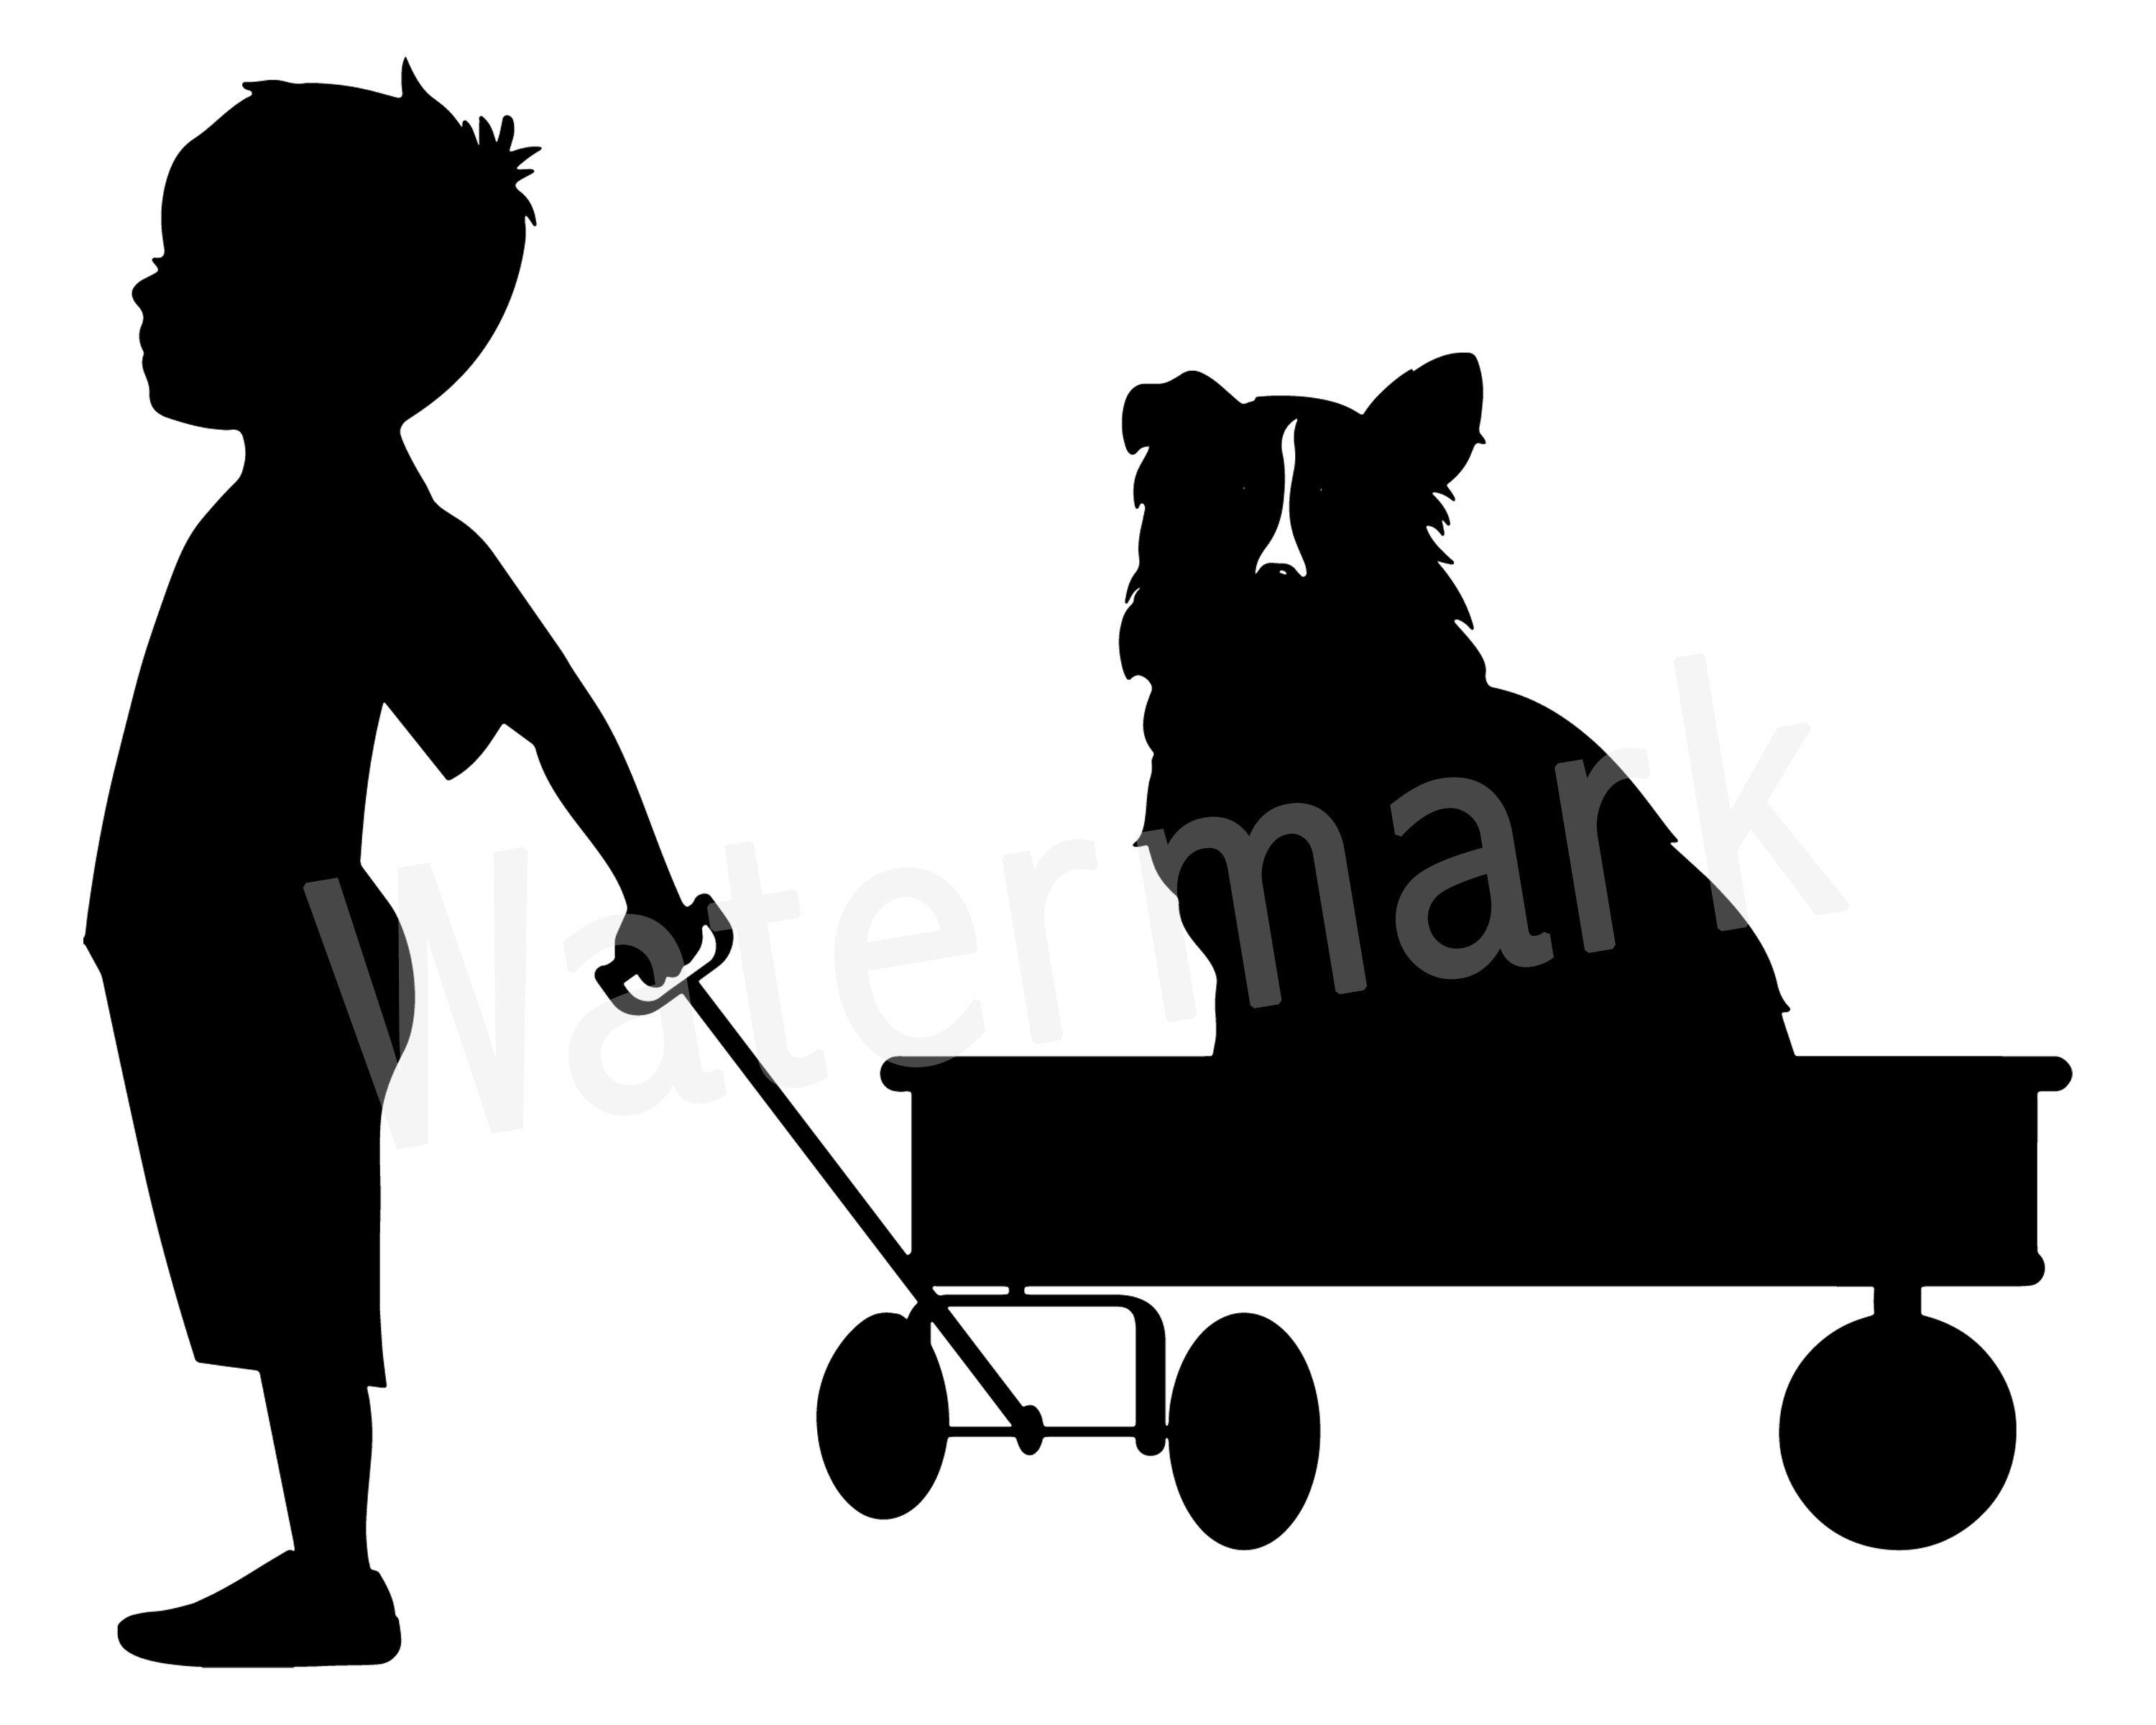 Black And White Silhouette Collar Silhouette Black And White Silhouette  Black And White Dog Clipart: black white silhouette black-and-white dog  clipart, Download black white silhouette black-and-white dog